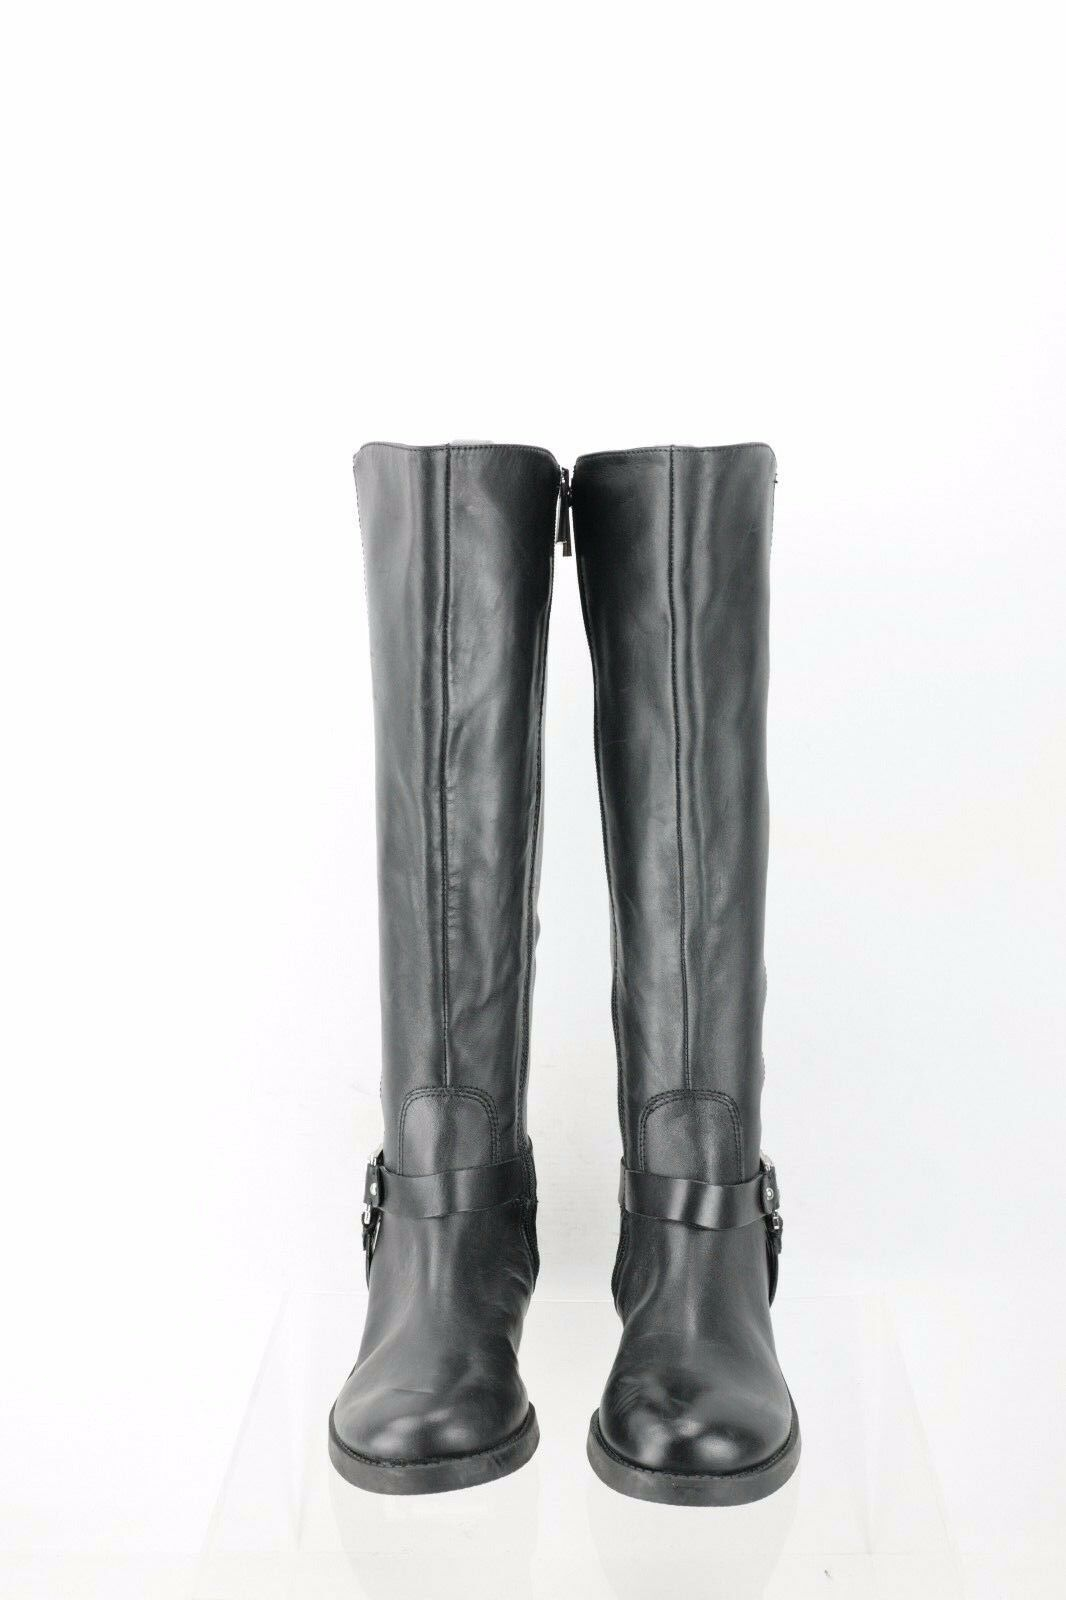 Vince Camuto Farren Farren Farren Black Leather Knee High Boots Women's shoes Size 4.5 M NEW e749b5